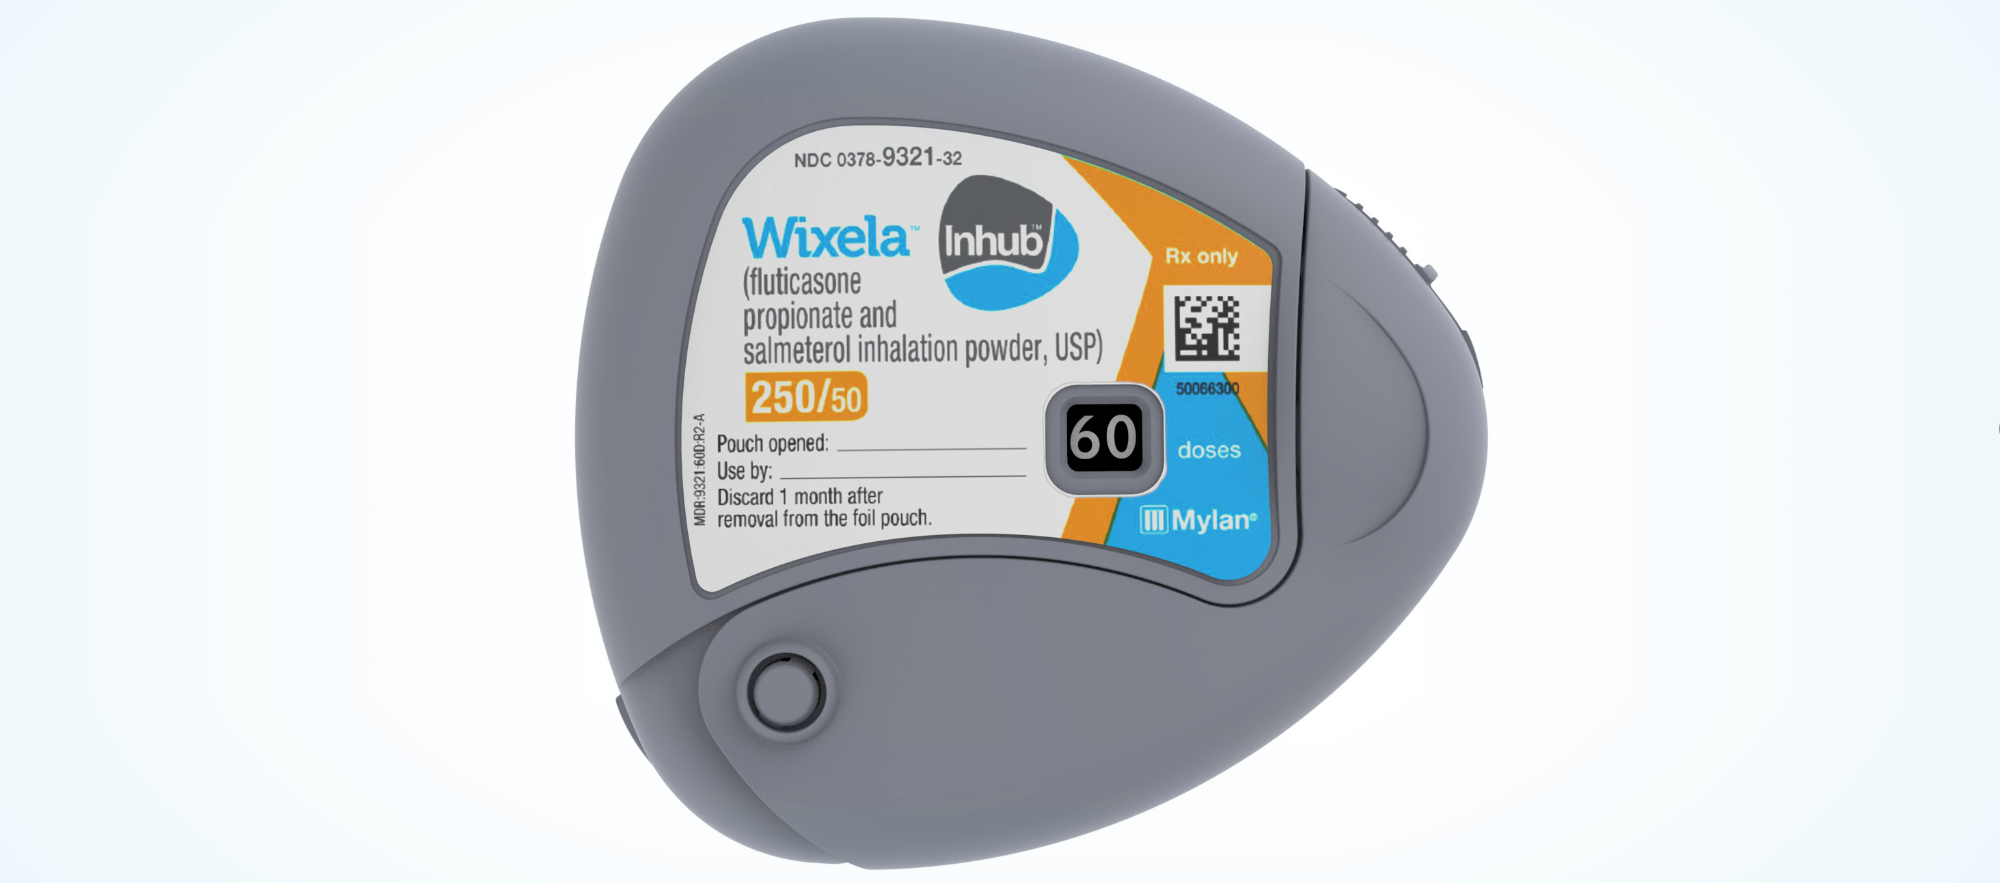 Wixela Inhub Now Available For Asthma Copd Treatment Mpr